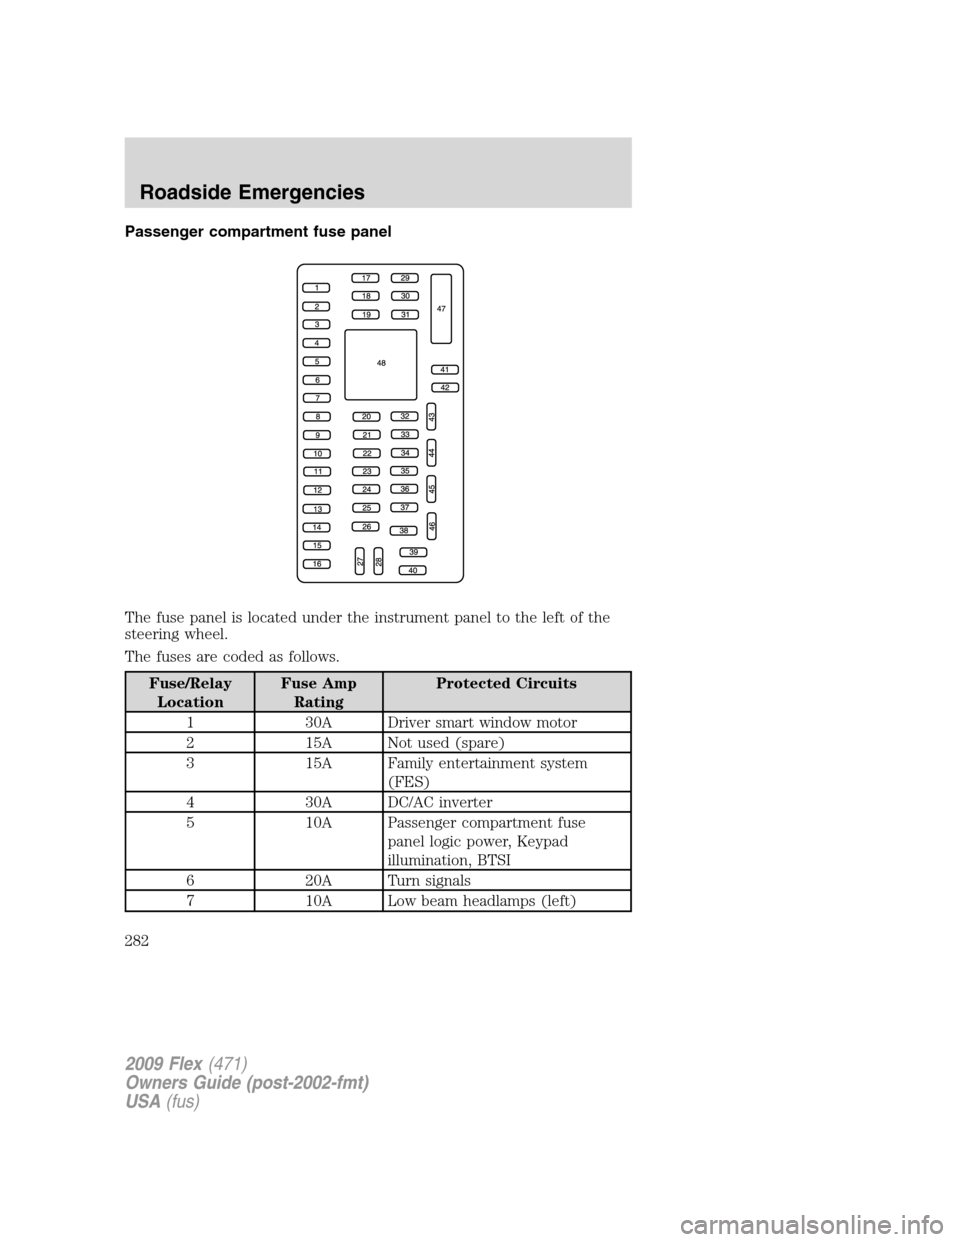 hight resolution of ford flex 2009 1 g owners manual page 282 passenger compartment fuse panel